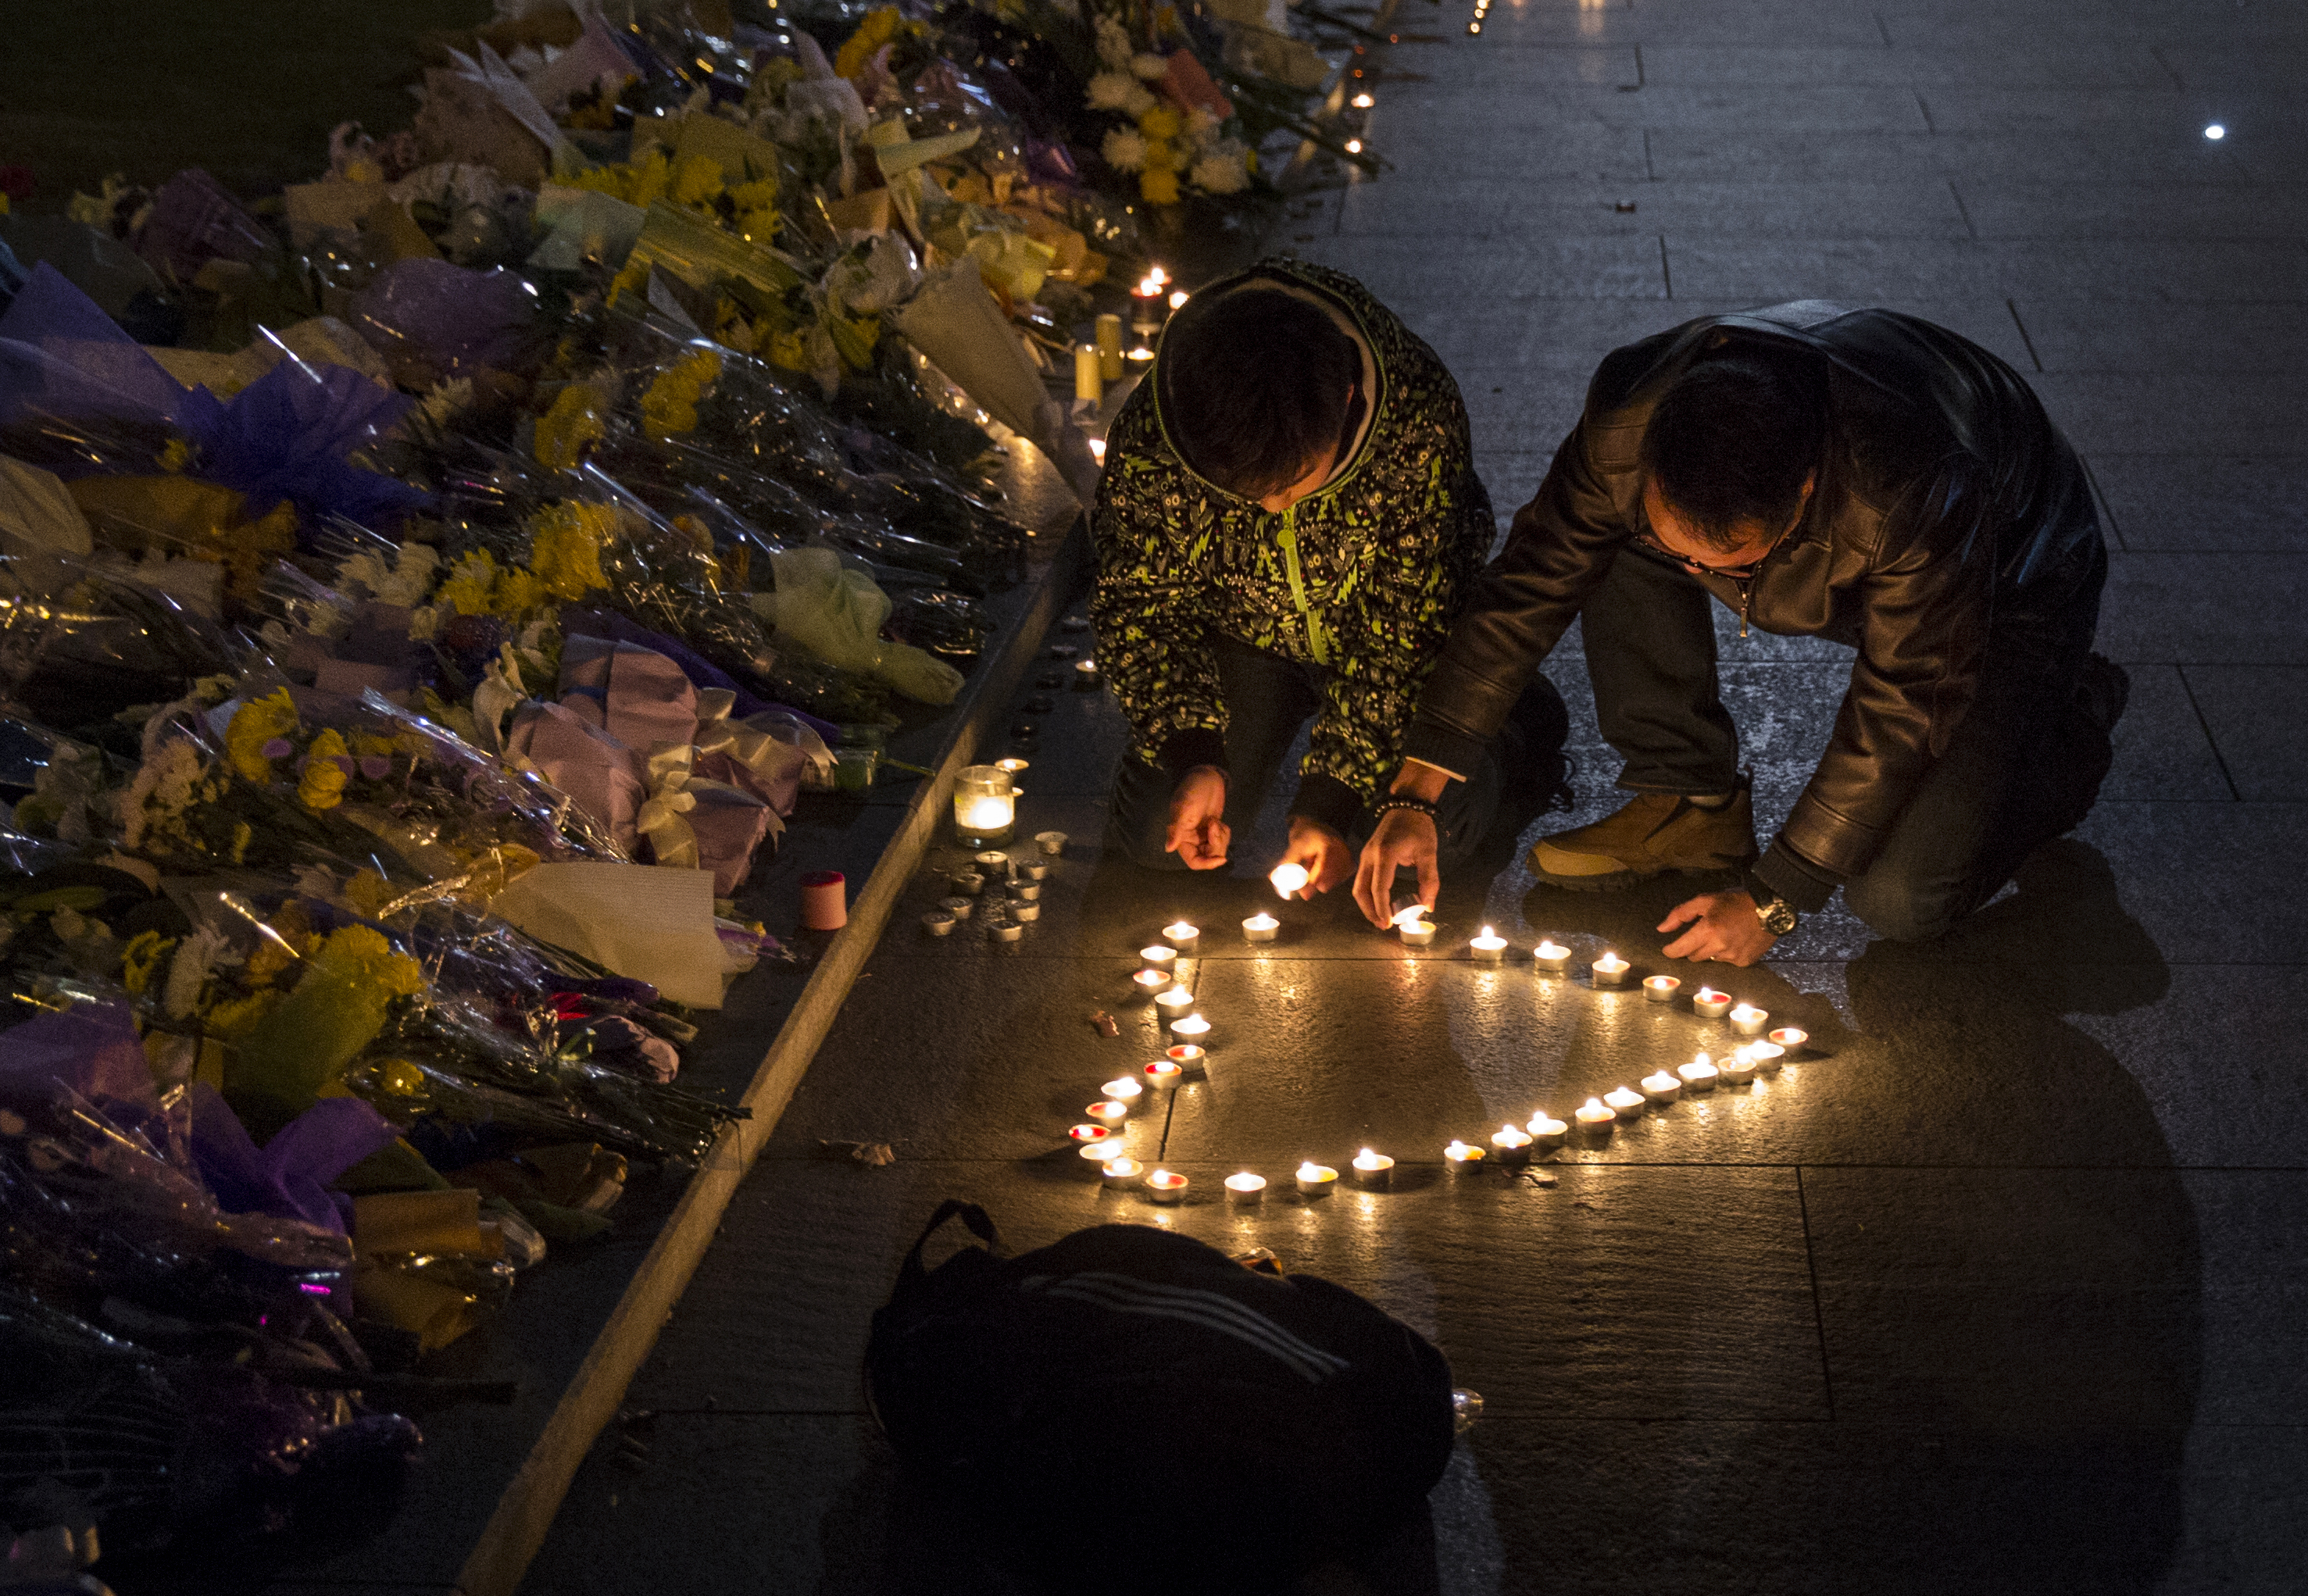 Mourners light candles in the shape of a heart at a makeshift memorial at the site of a stampede on January 1, 2015 on the Bund in Shanghai, China. More than 35 people died and dozens were injured during a stampede at a New Years eve celebration late December 31, 2014.